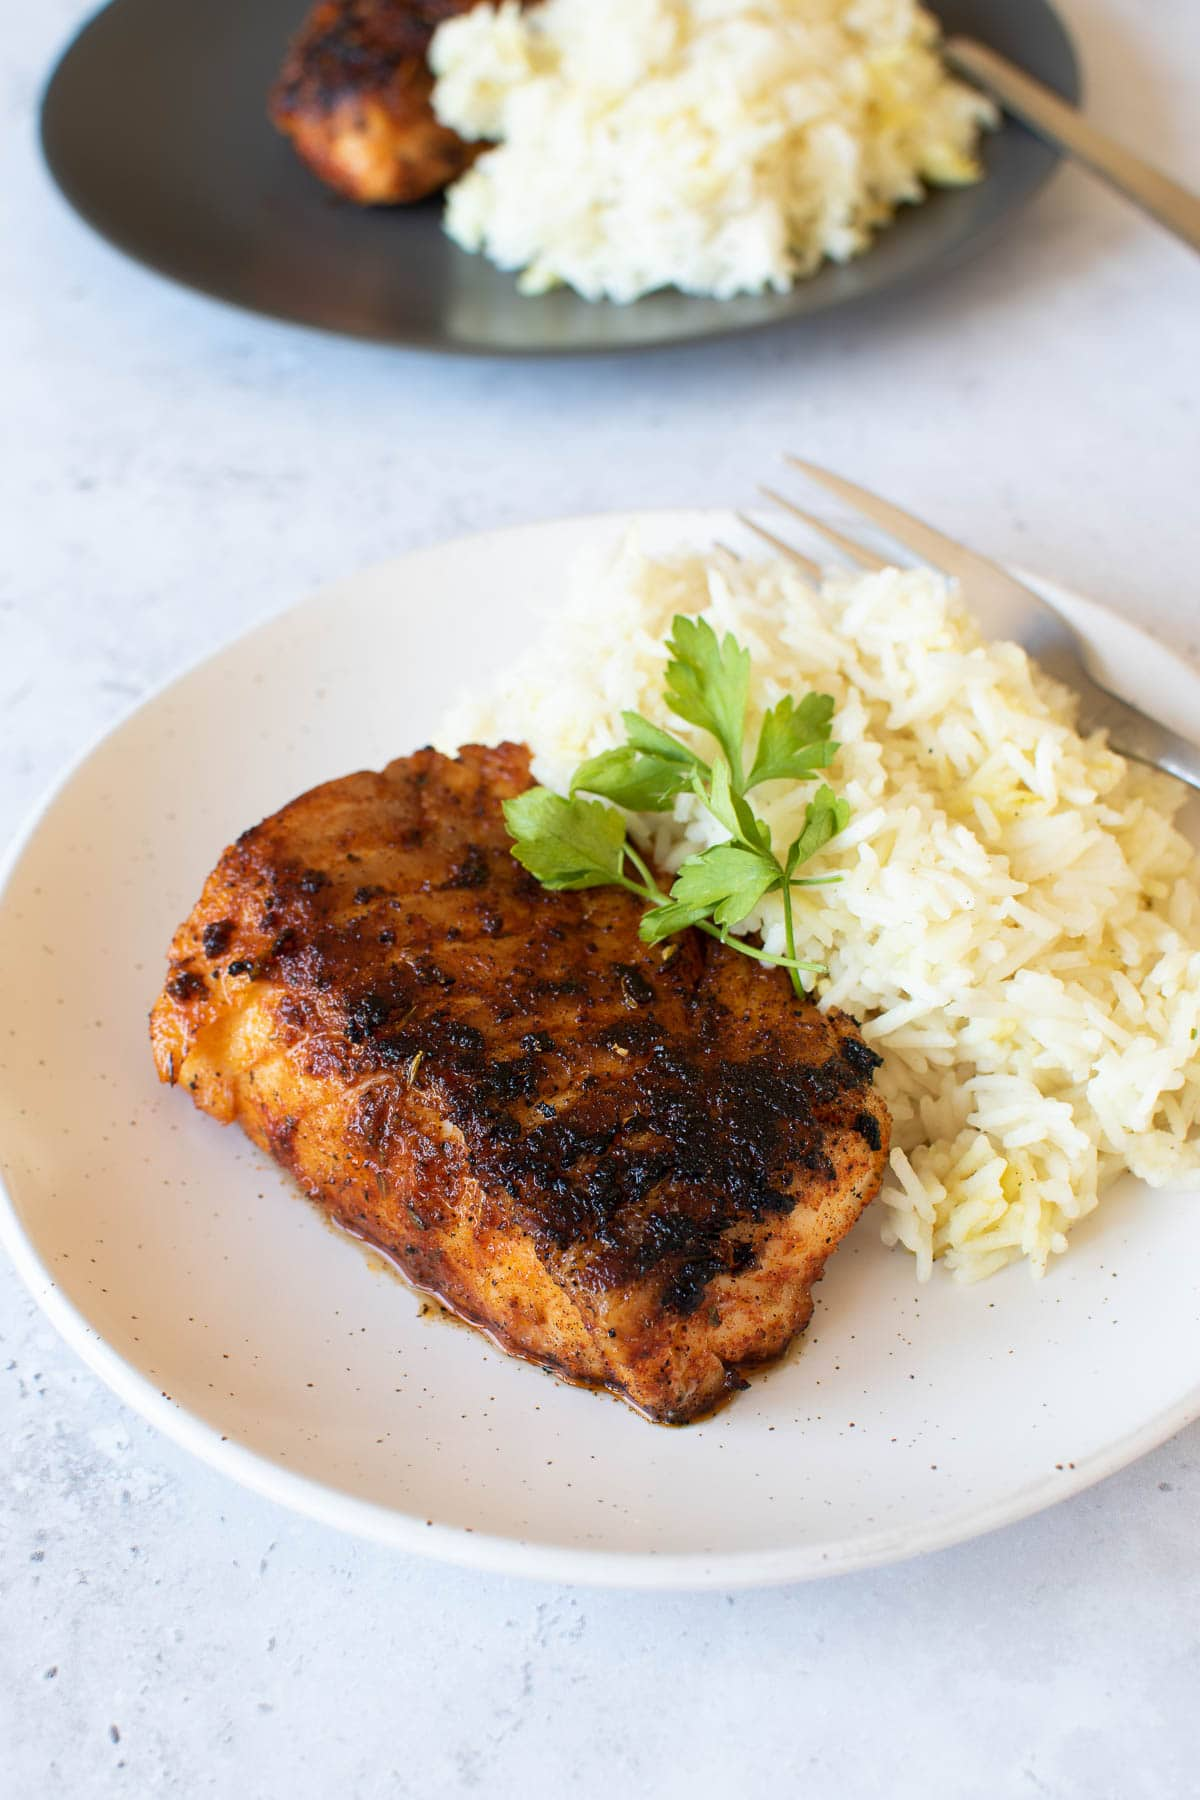 Blackened cod fish on a plate with rice.